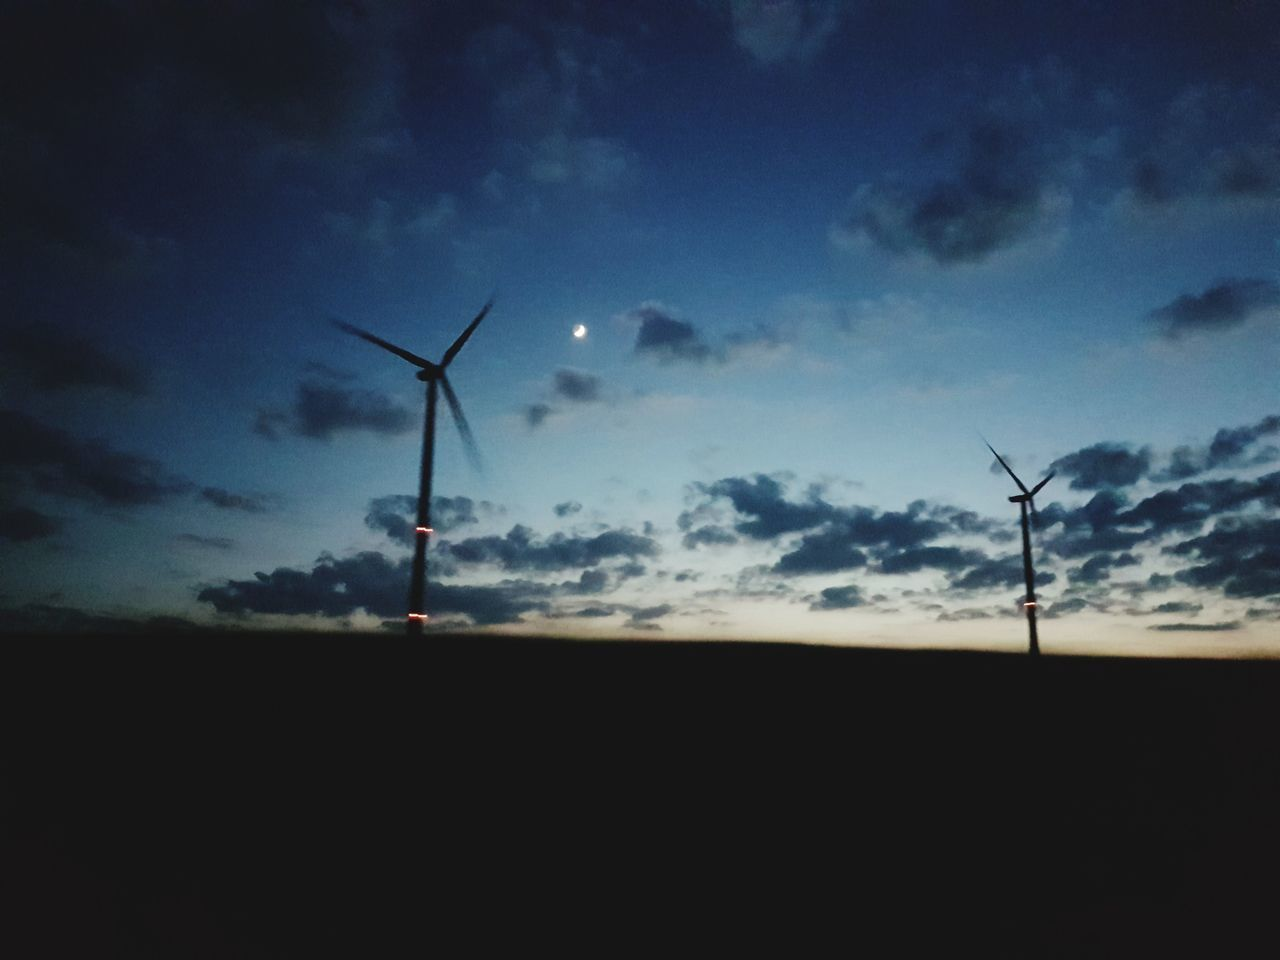 wind power, wind turbine, alternative energy, environmental conservation, windmill, renewable energy, fuel and power generation, industrial windmill, sky, rural scene, silhouette, low angle view, field, outdoors, technology, no people, nature, cloud - sky, sunset, traditional windmill, scenics, beauty in nature, day